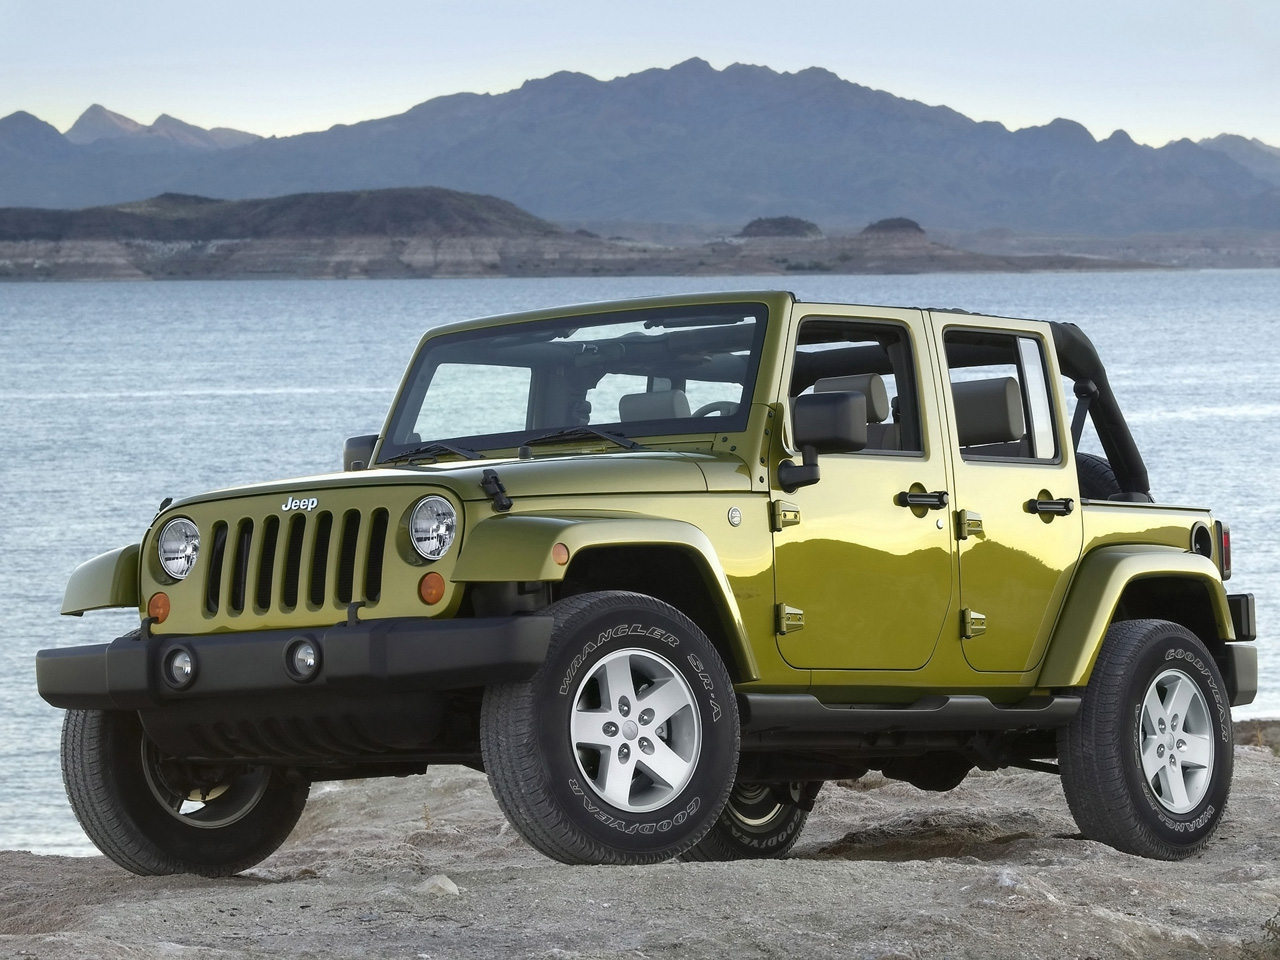 2007 Jeep¨ Wrangler Unlimited. JP007_055WR